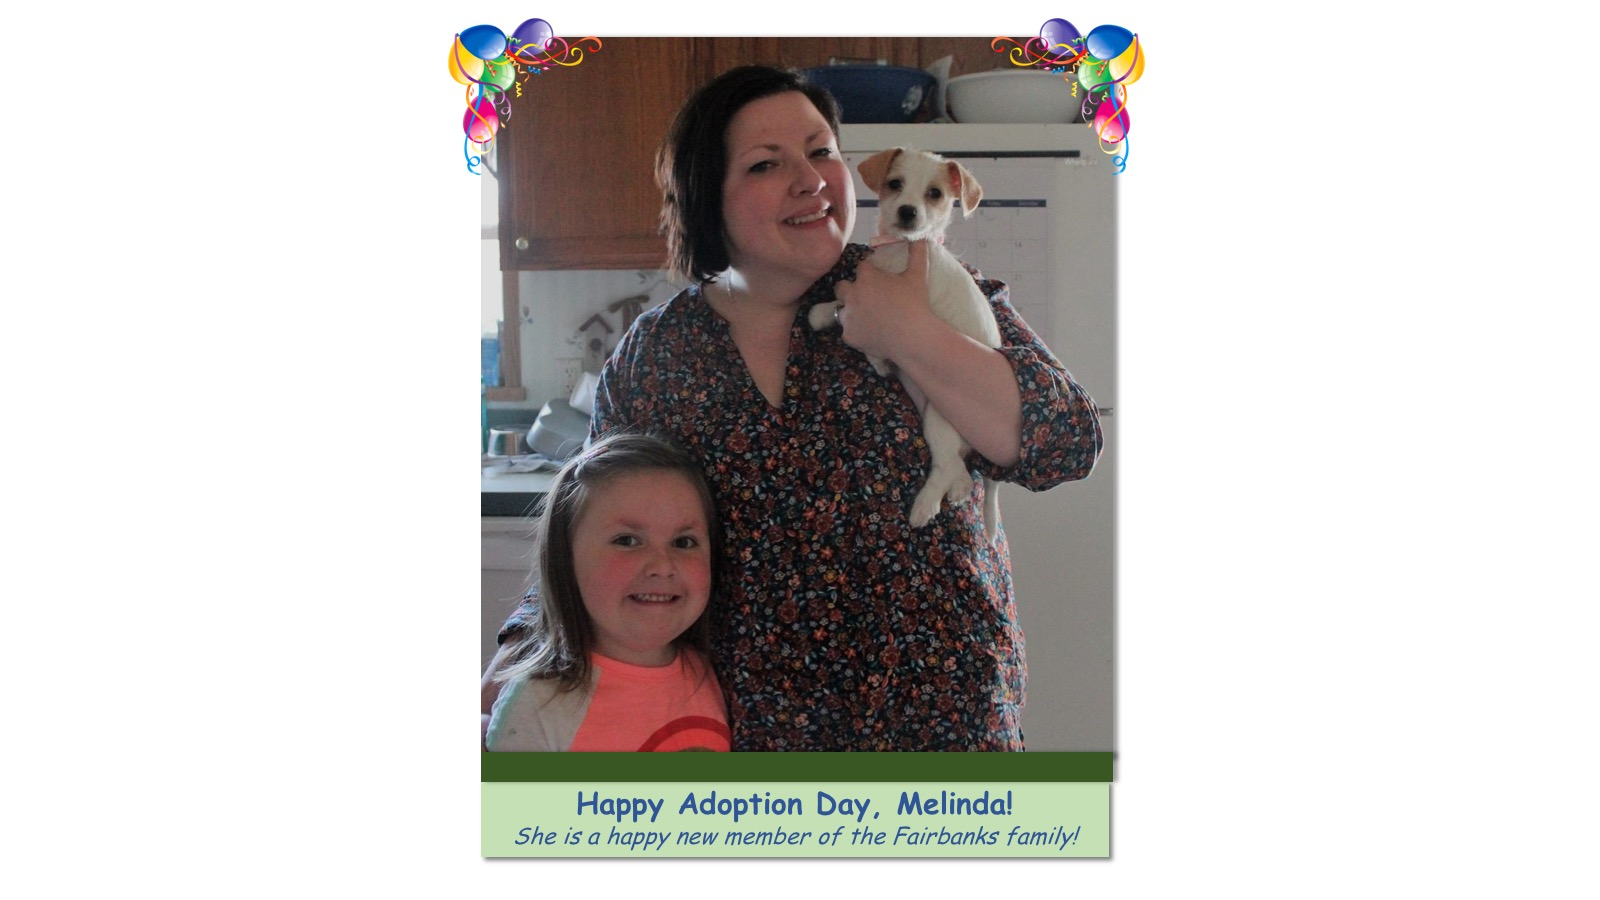 Melinda_Adoption_Photo_2018.jpg